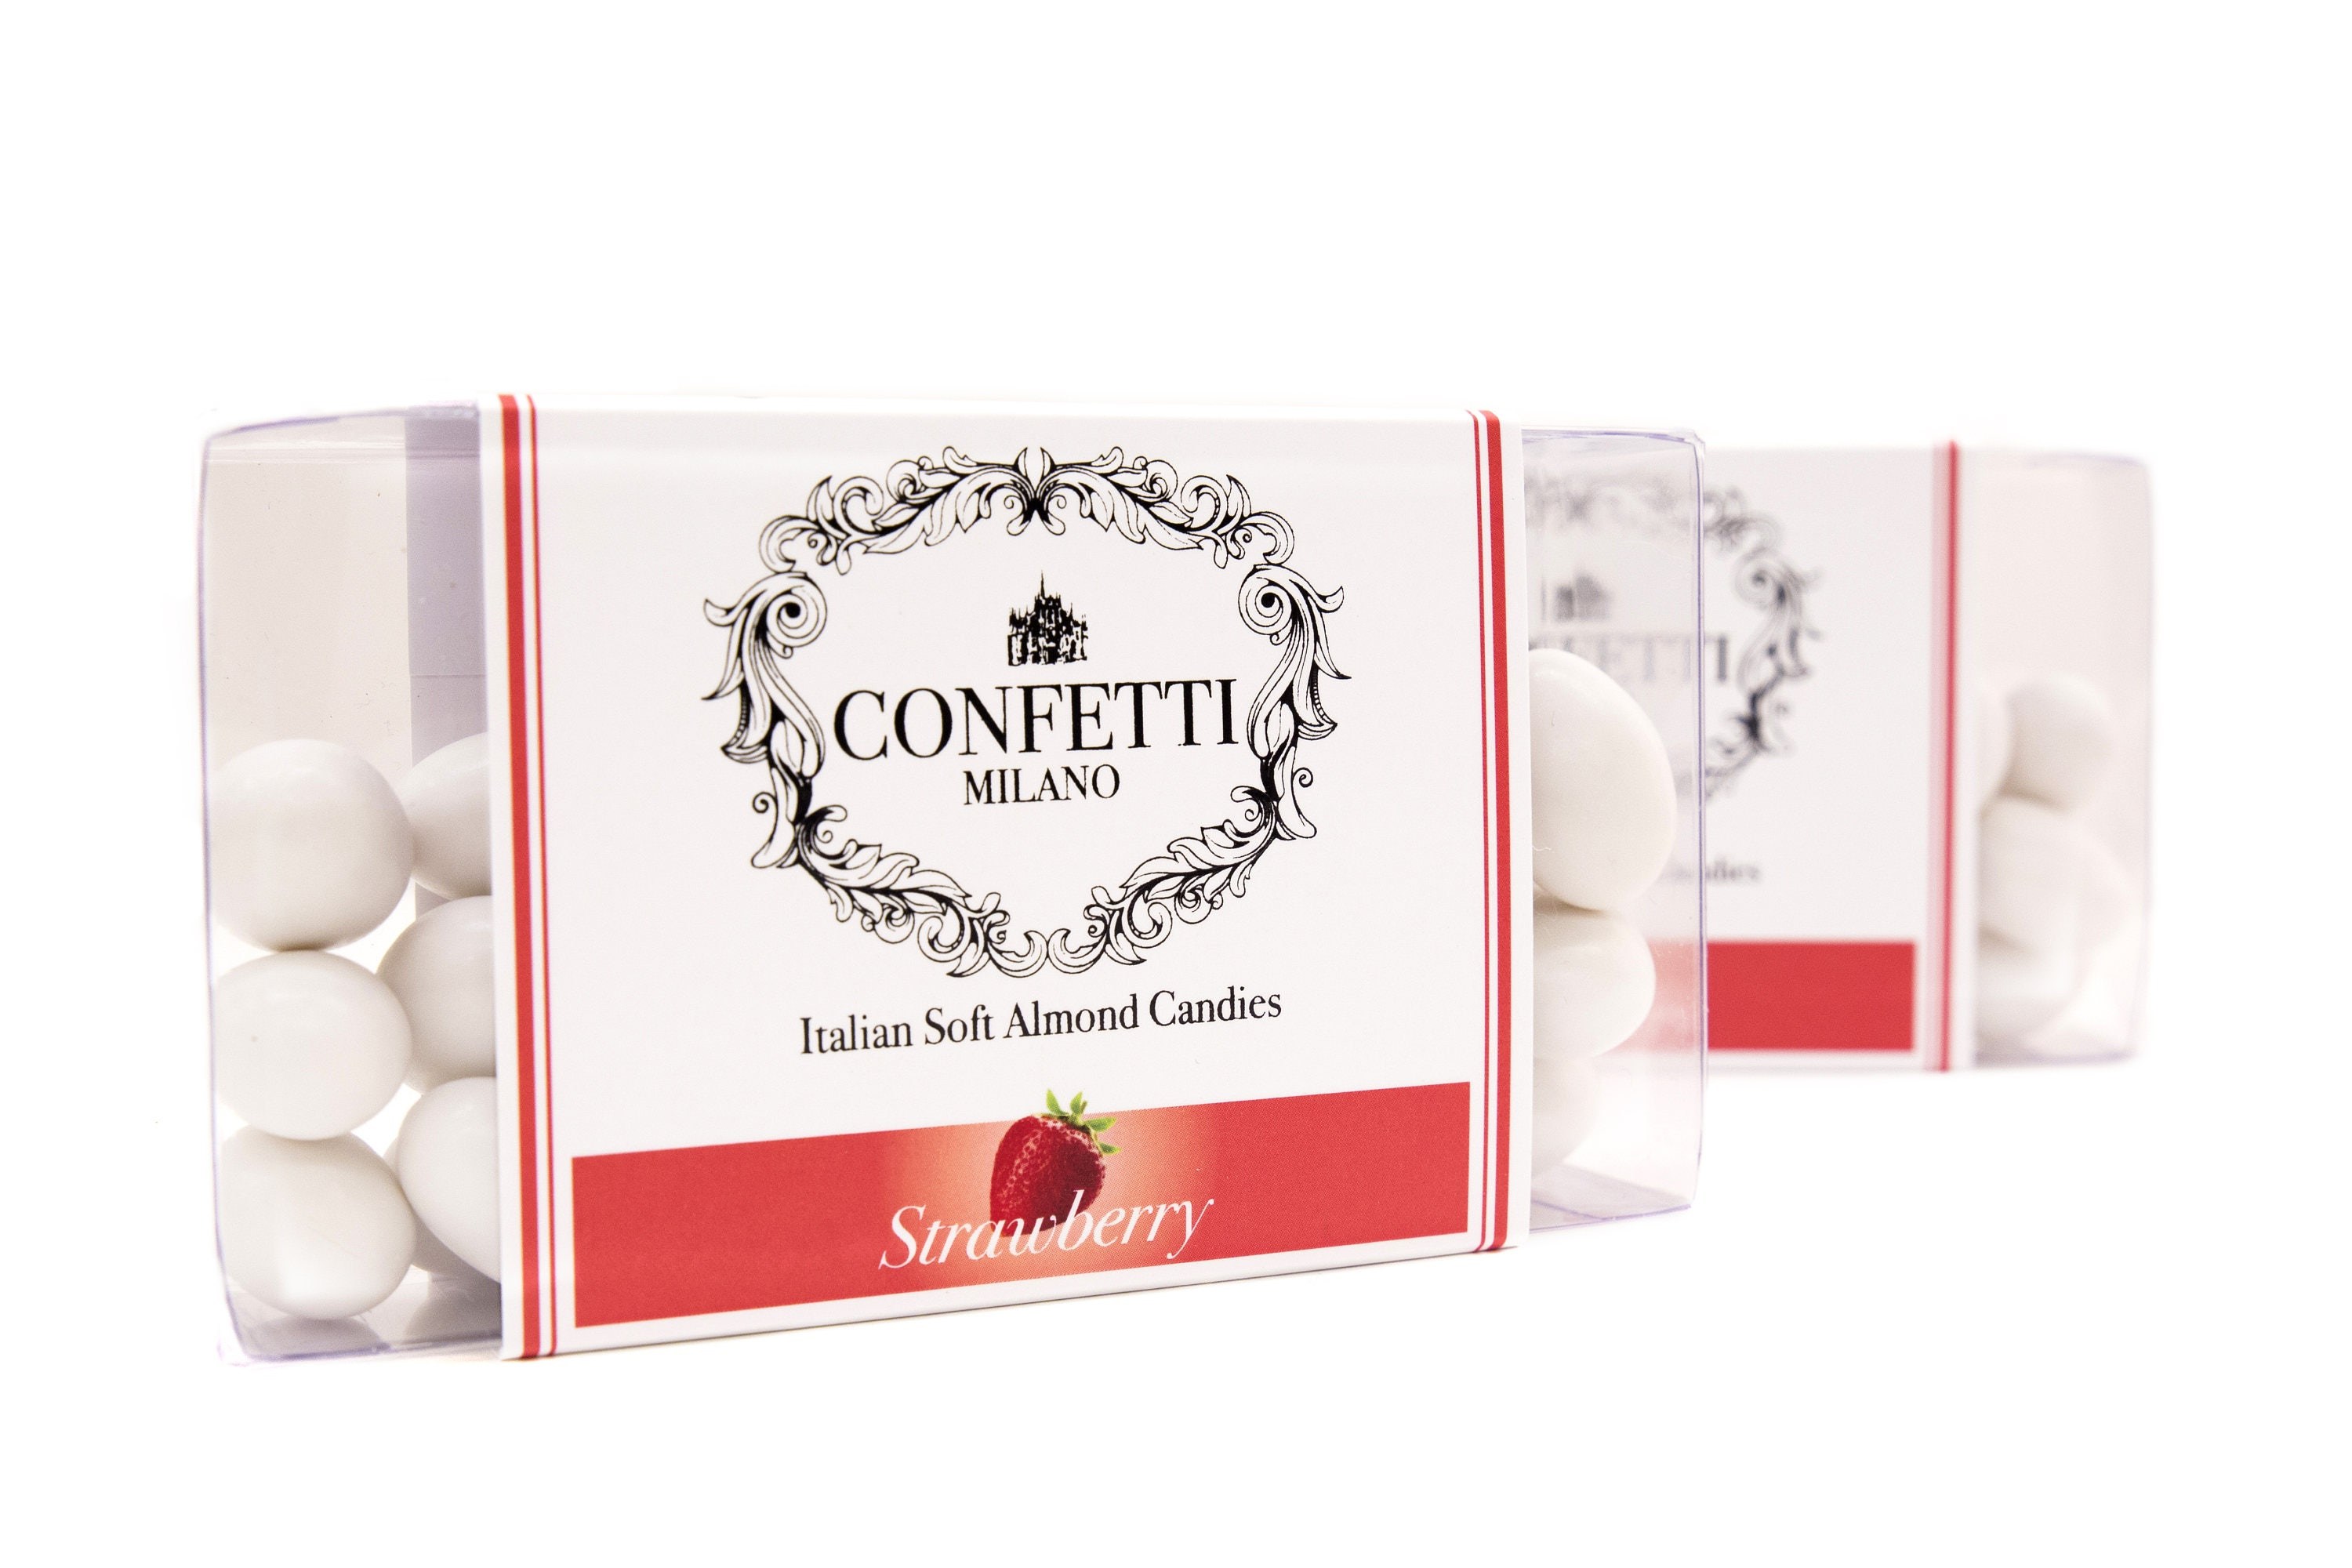 Strawberry Italian Wedding Confetti Almond candies soft